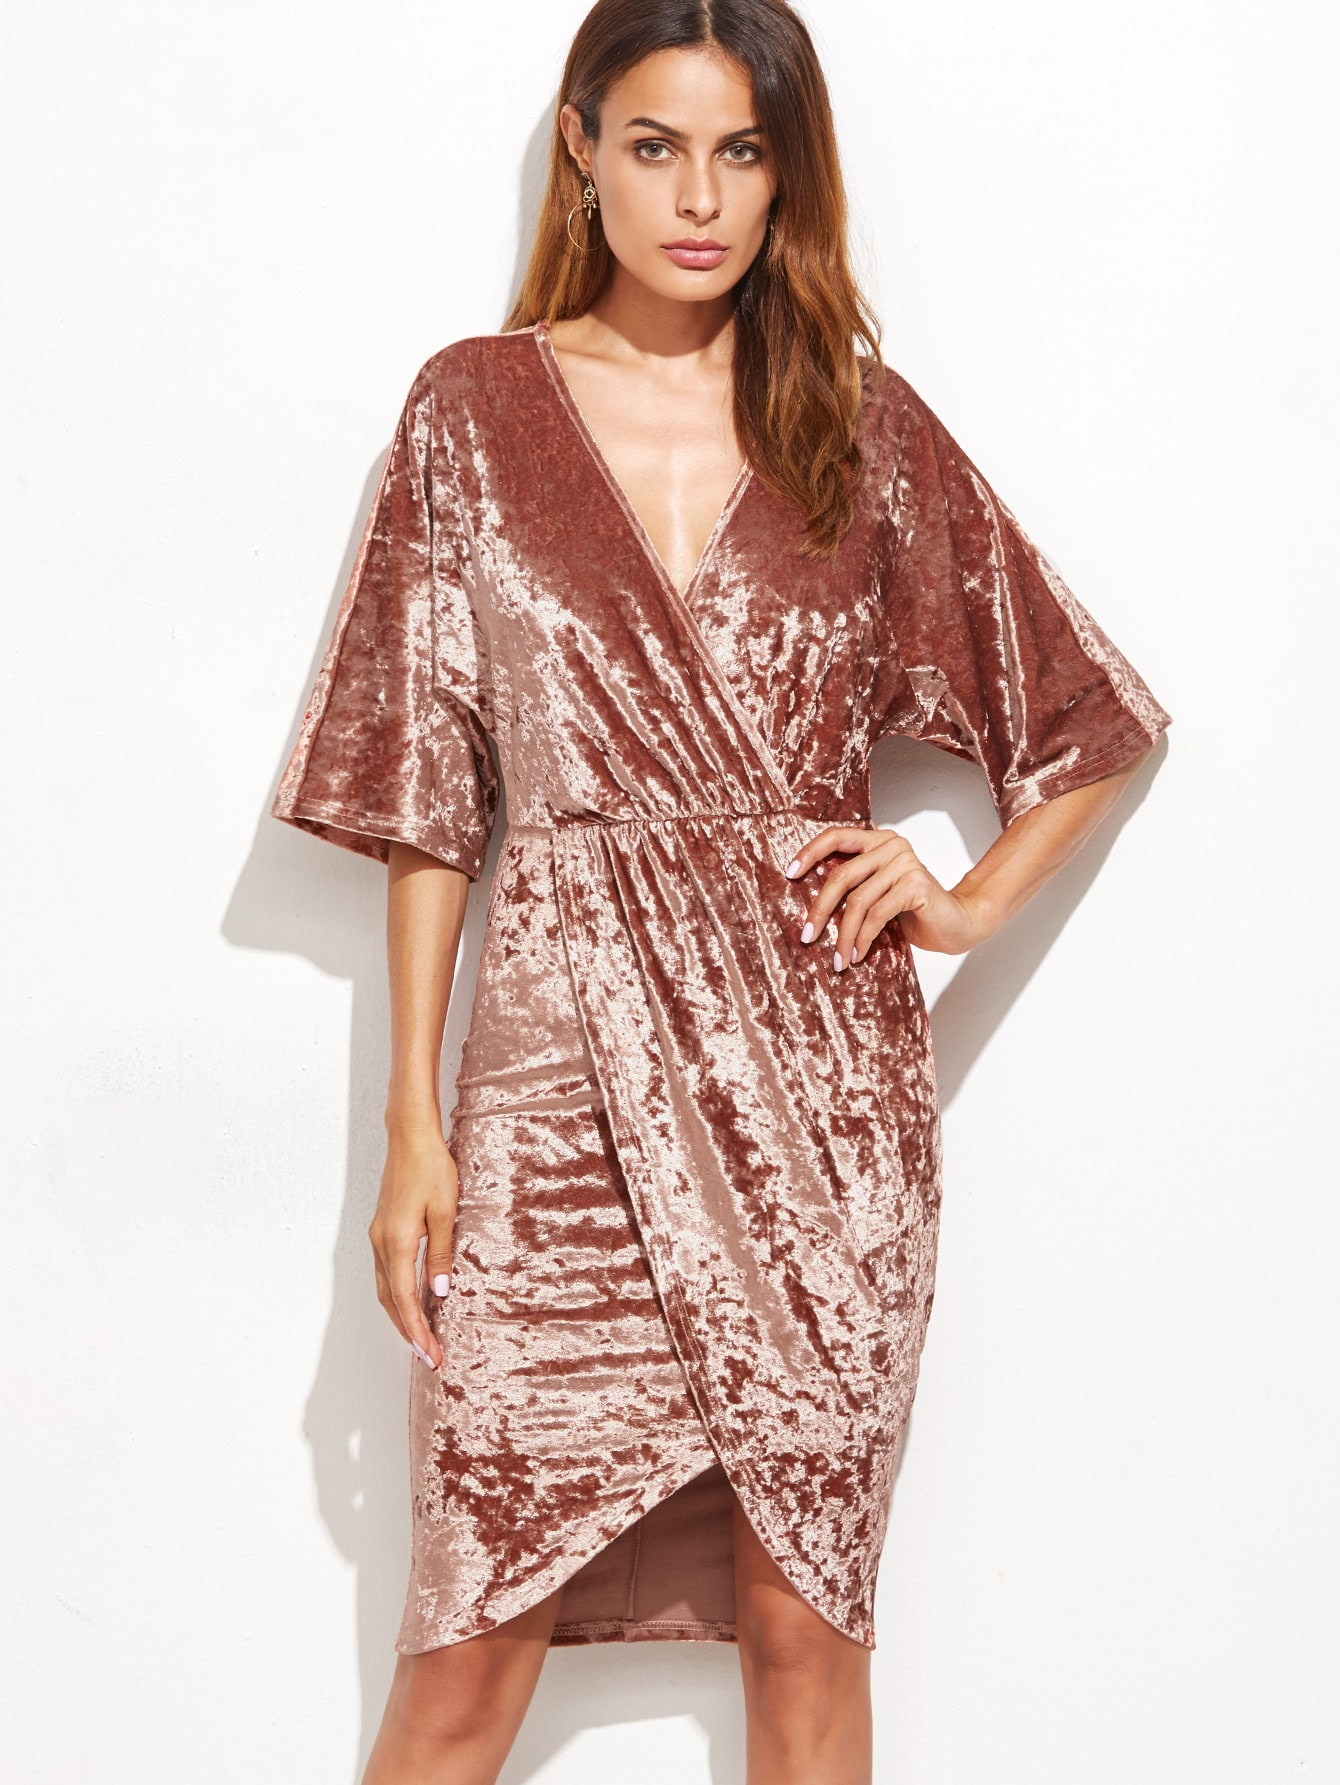 Brown Surplice Wrap Velvet Dress dress161020719